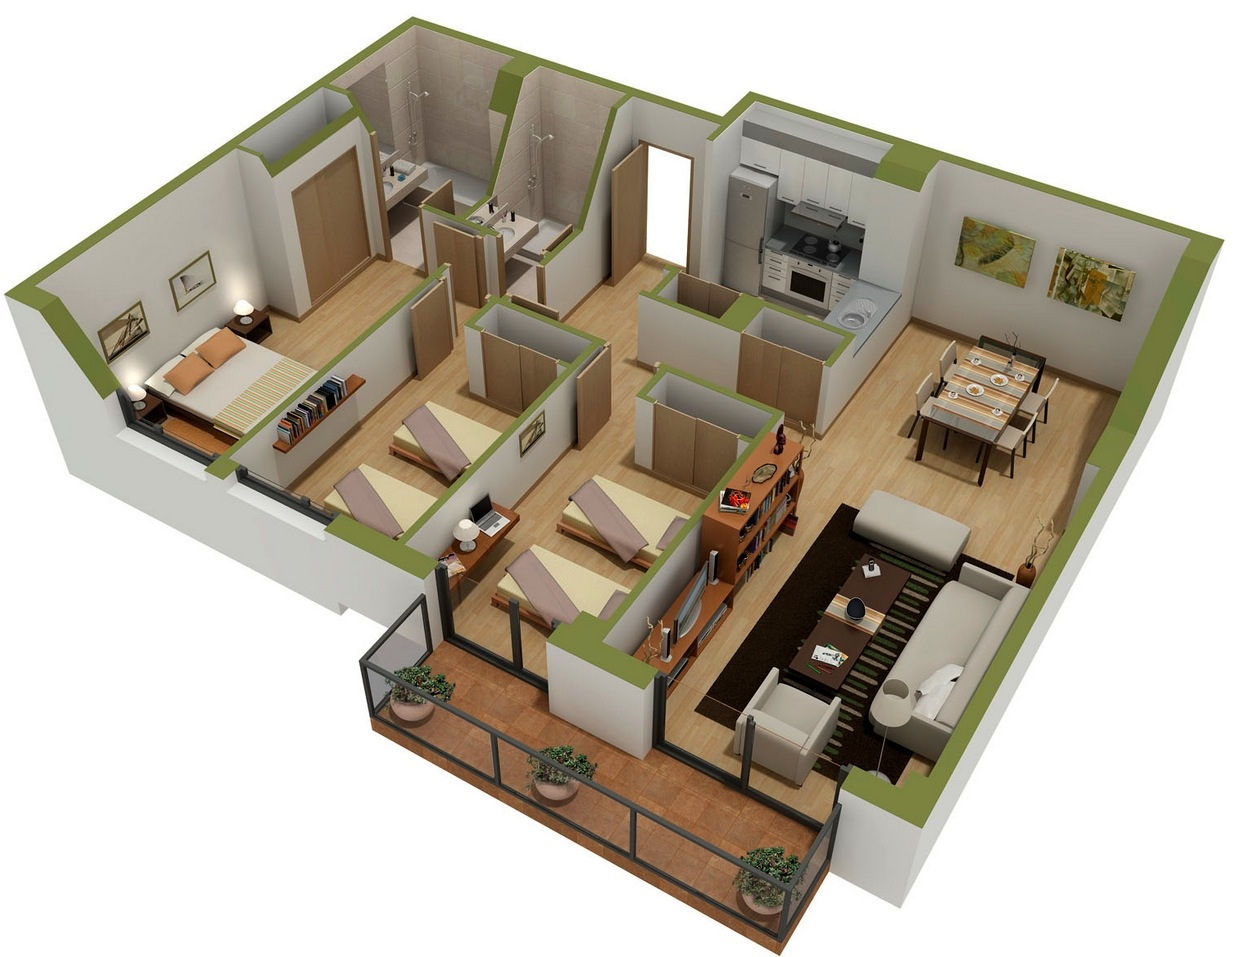 25 three bedroom house apartment floor plans Home layout planner